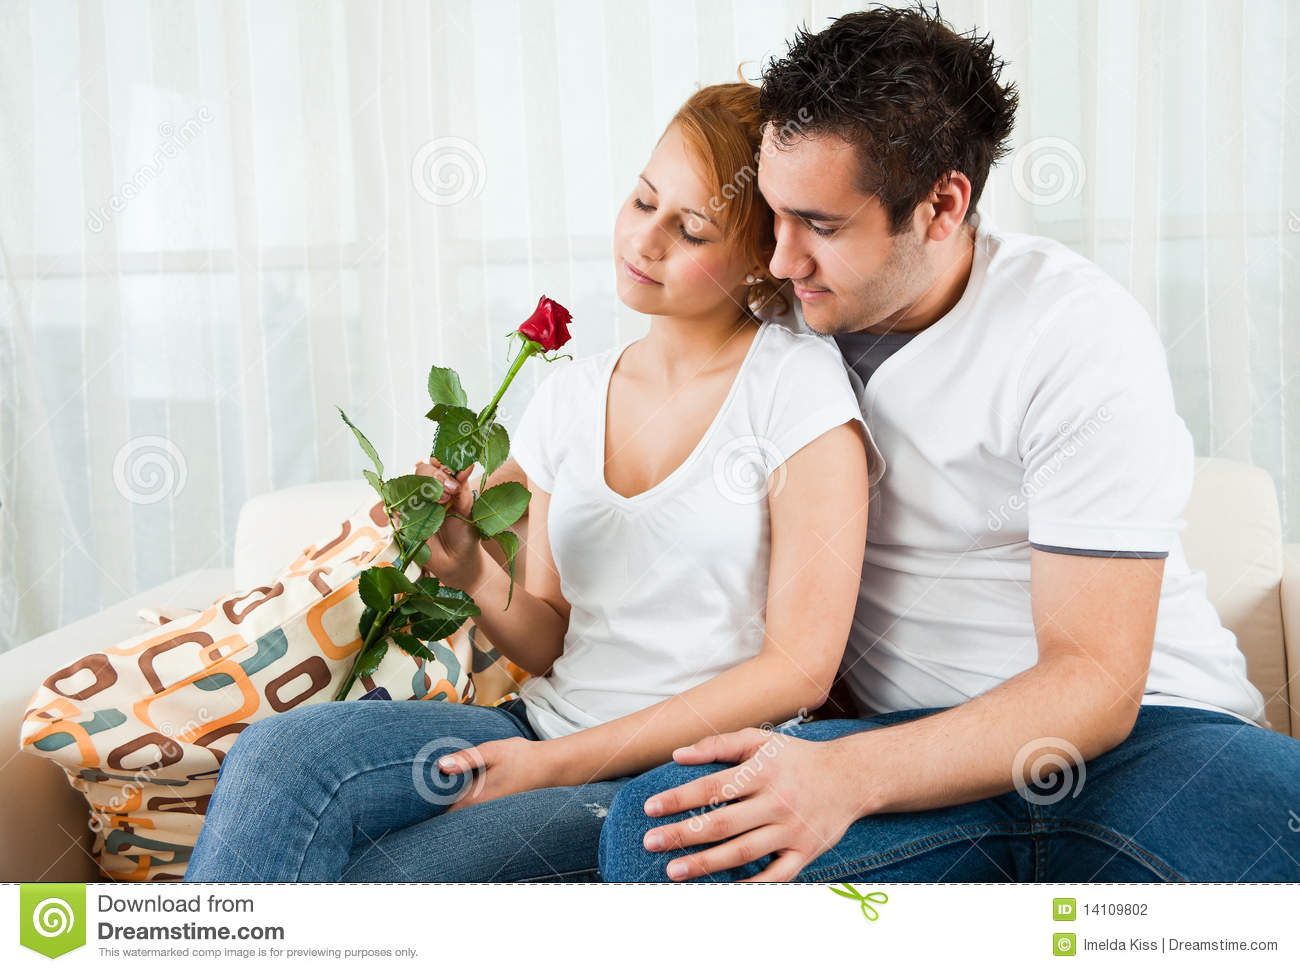 Young boy giving rose to a beauty, young girl